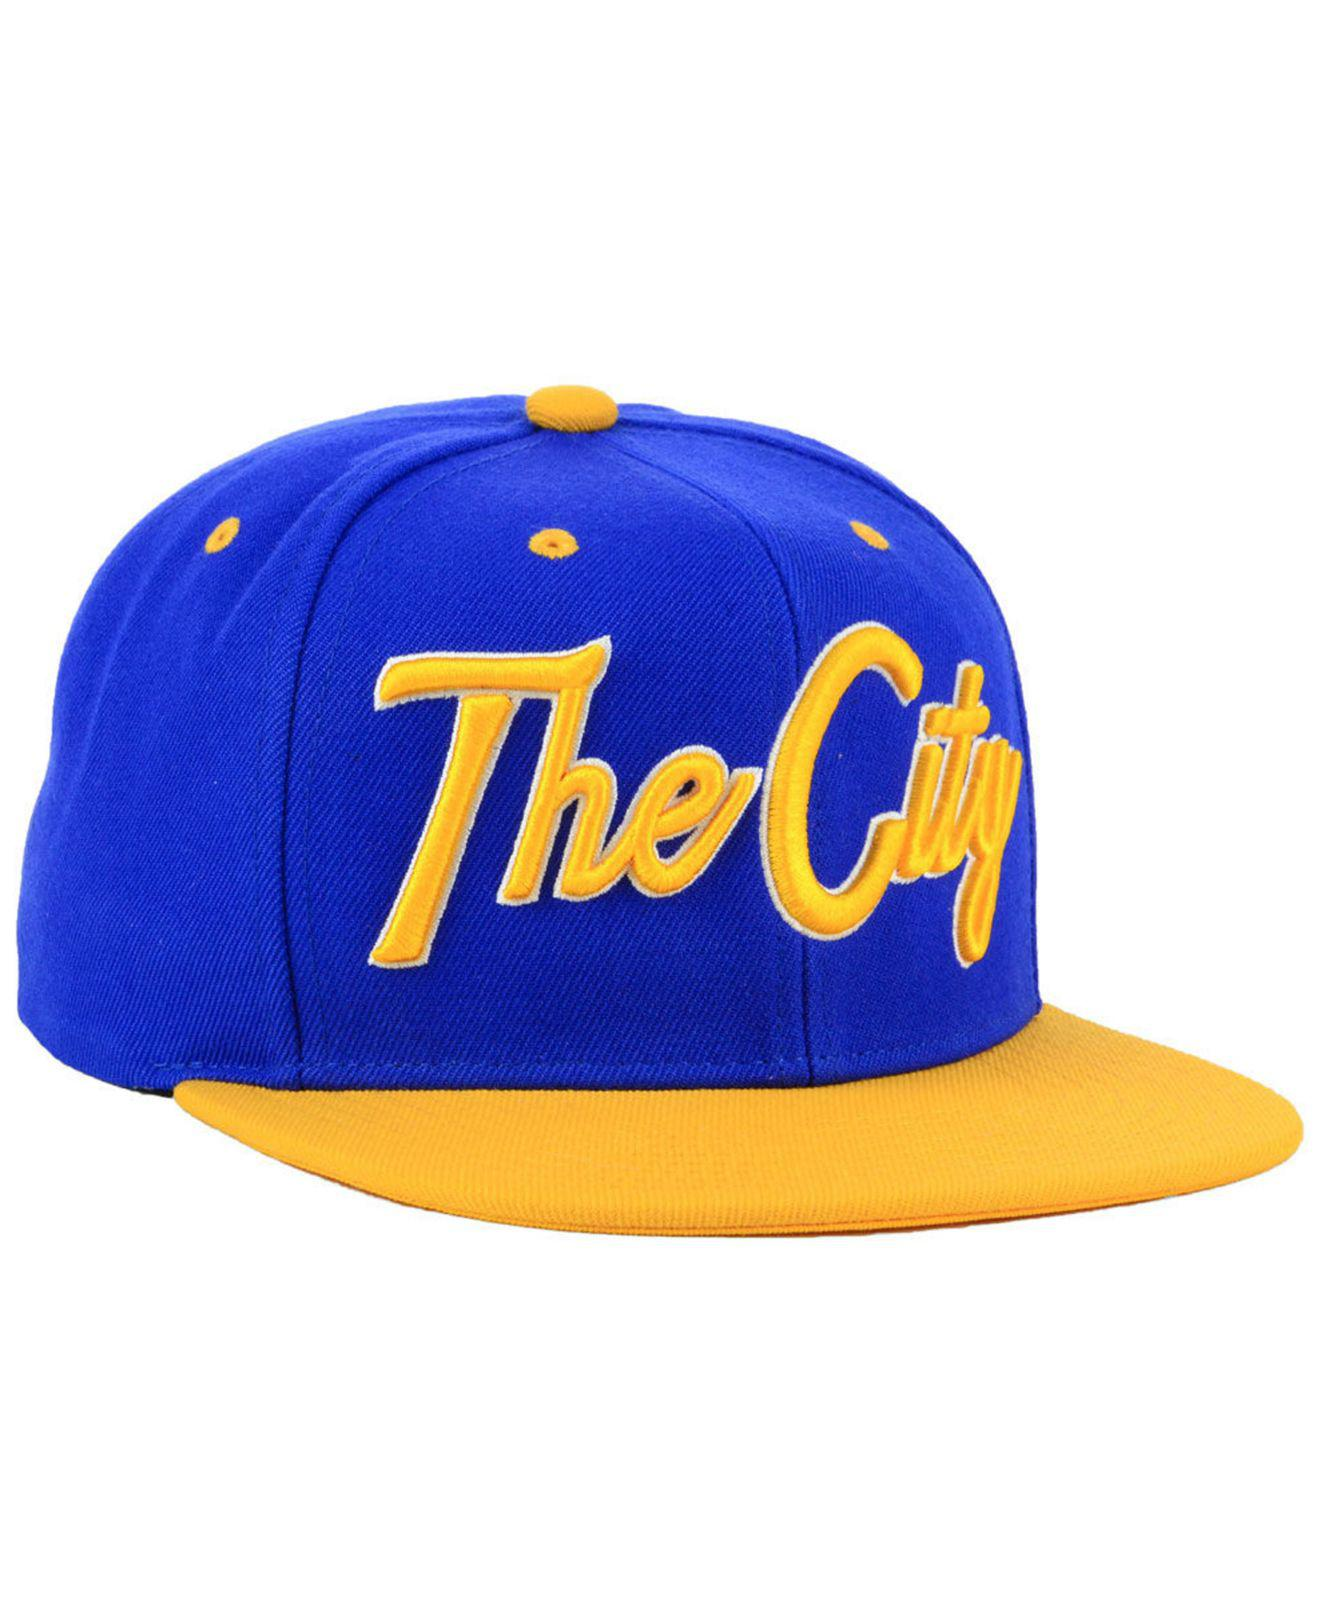 5b177602f28 Lyst - Mitchell   Ness Golden State Warriors Town Snapback Cap in ...